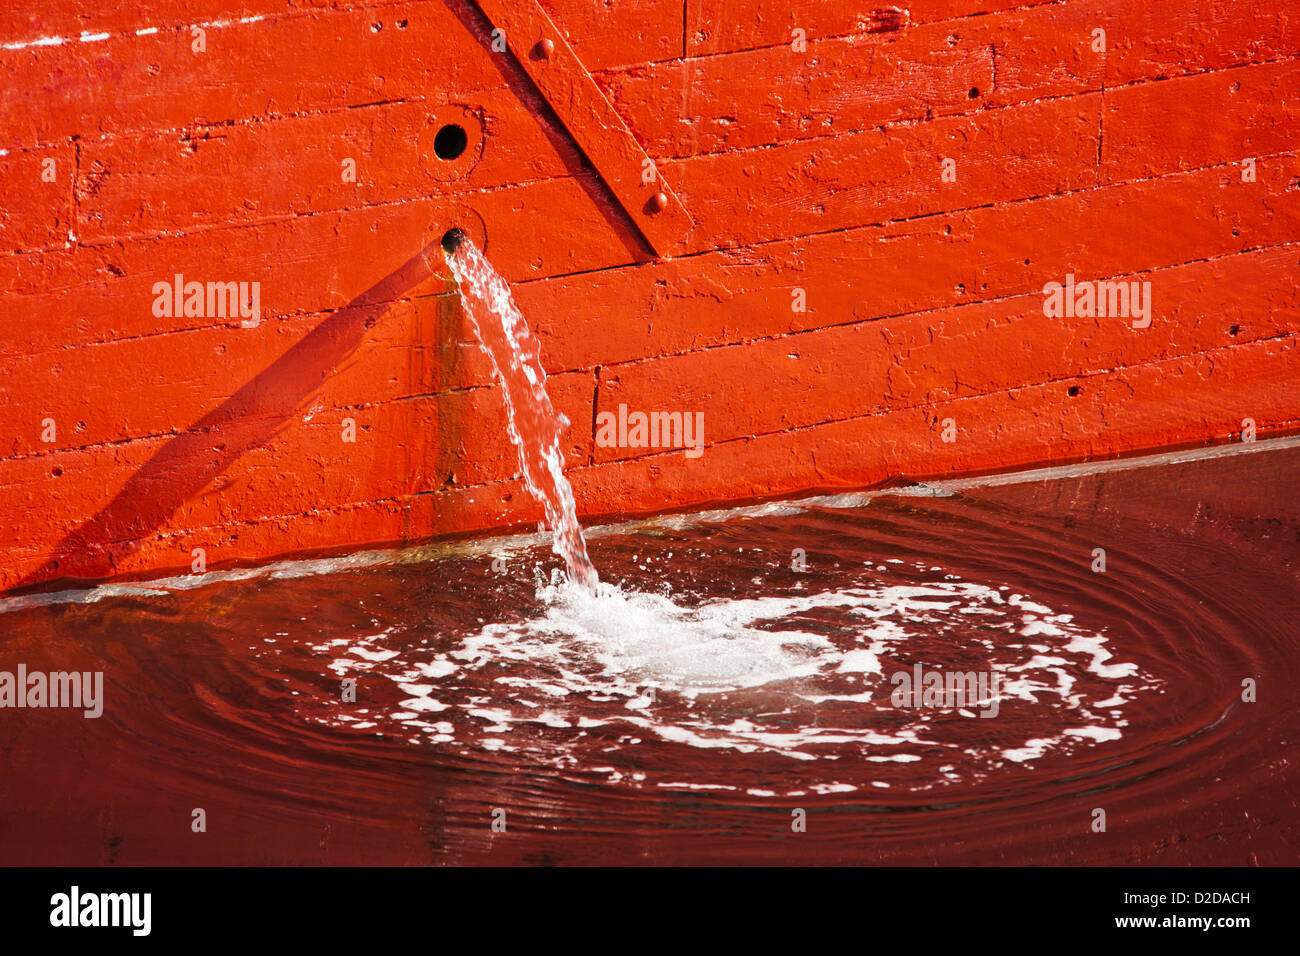 A bilge pump ejects water from the side of a fishing boat. - Stock Image